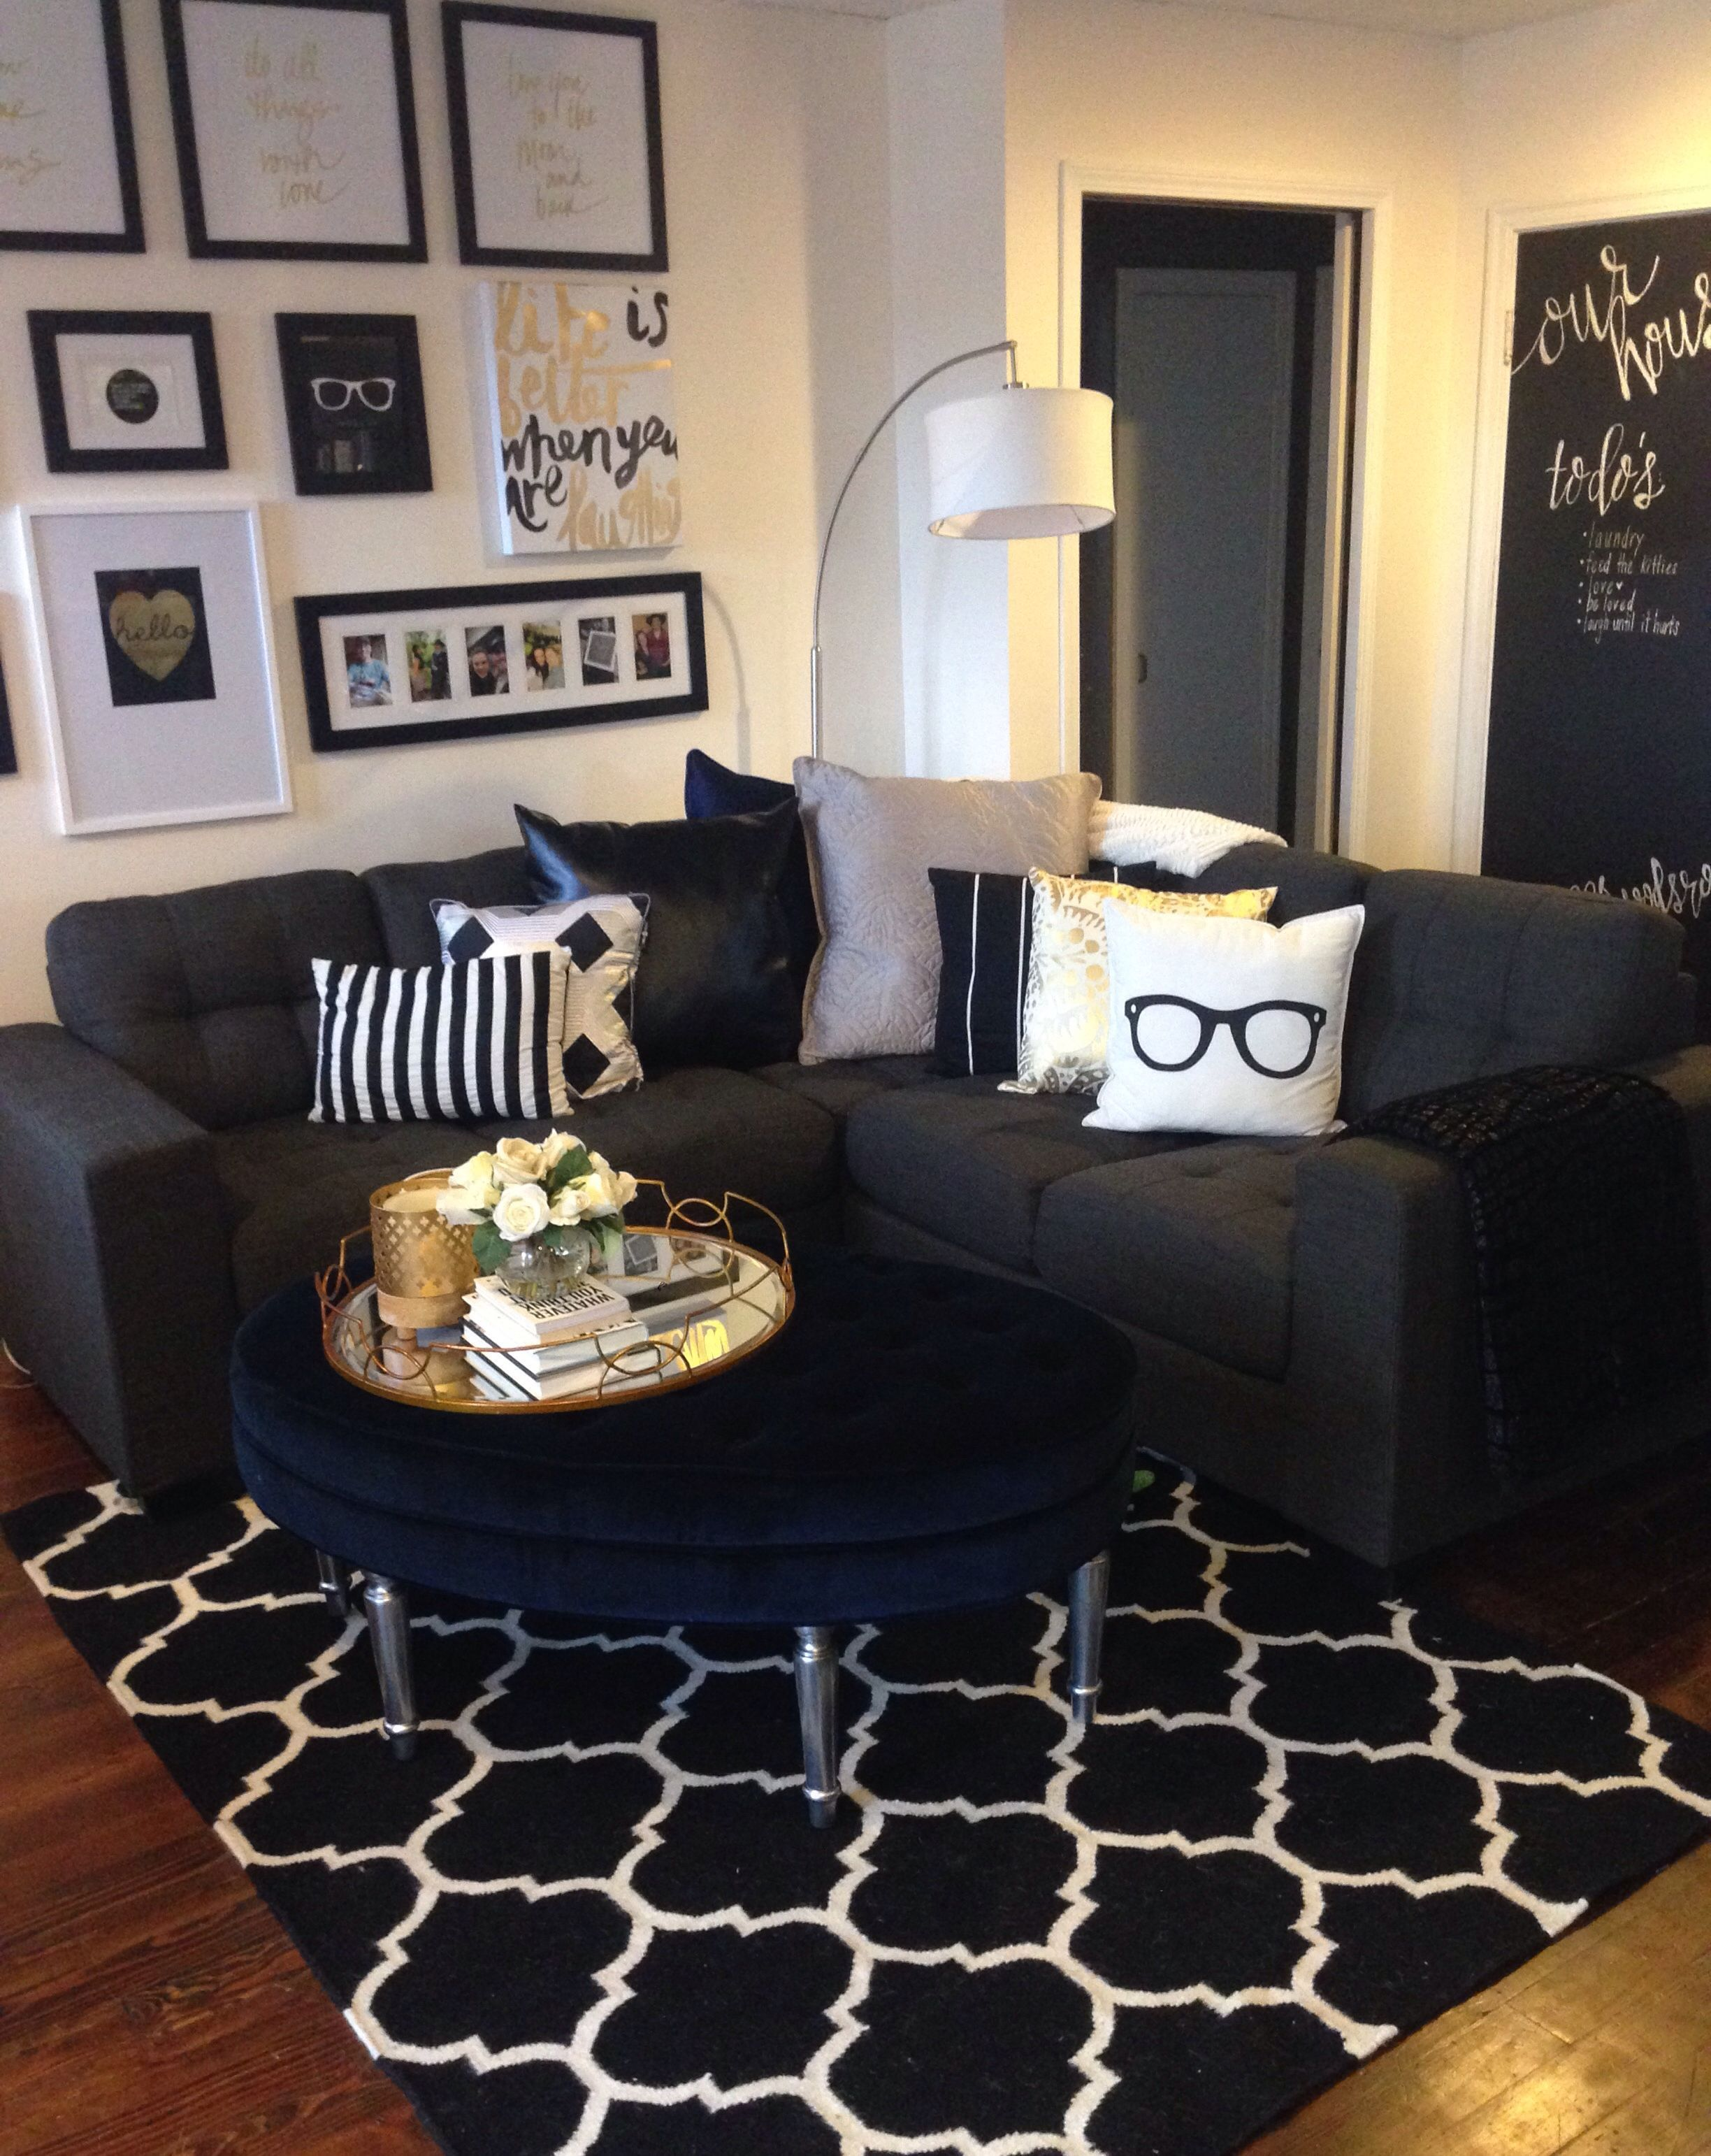 awesome 50 diy apartement decorating ideas on a budget on diy home decor on a budget apartment ideas id=56937